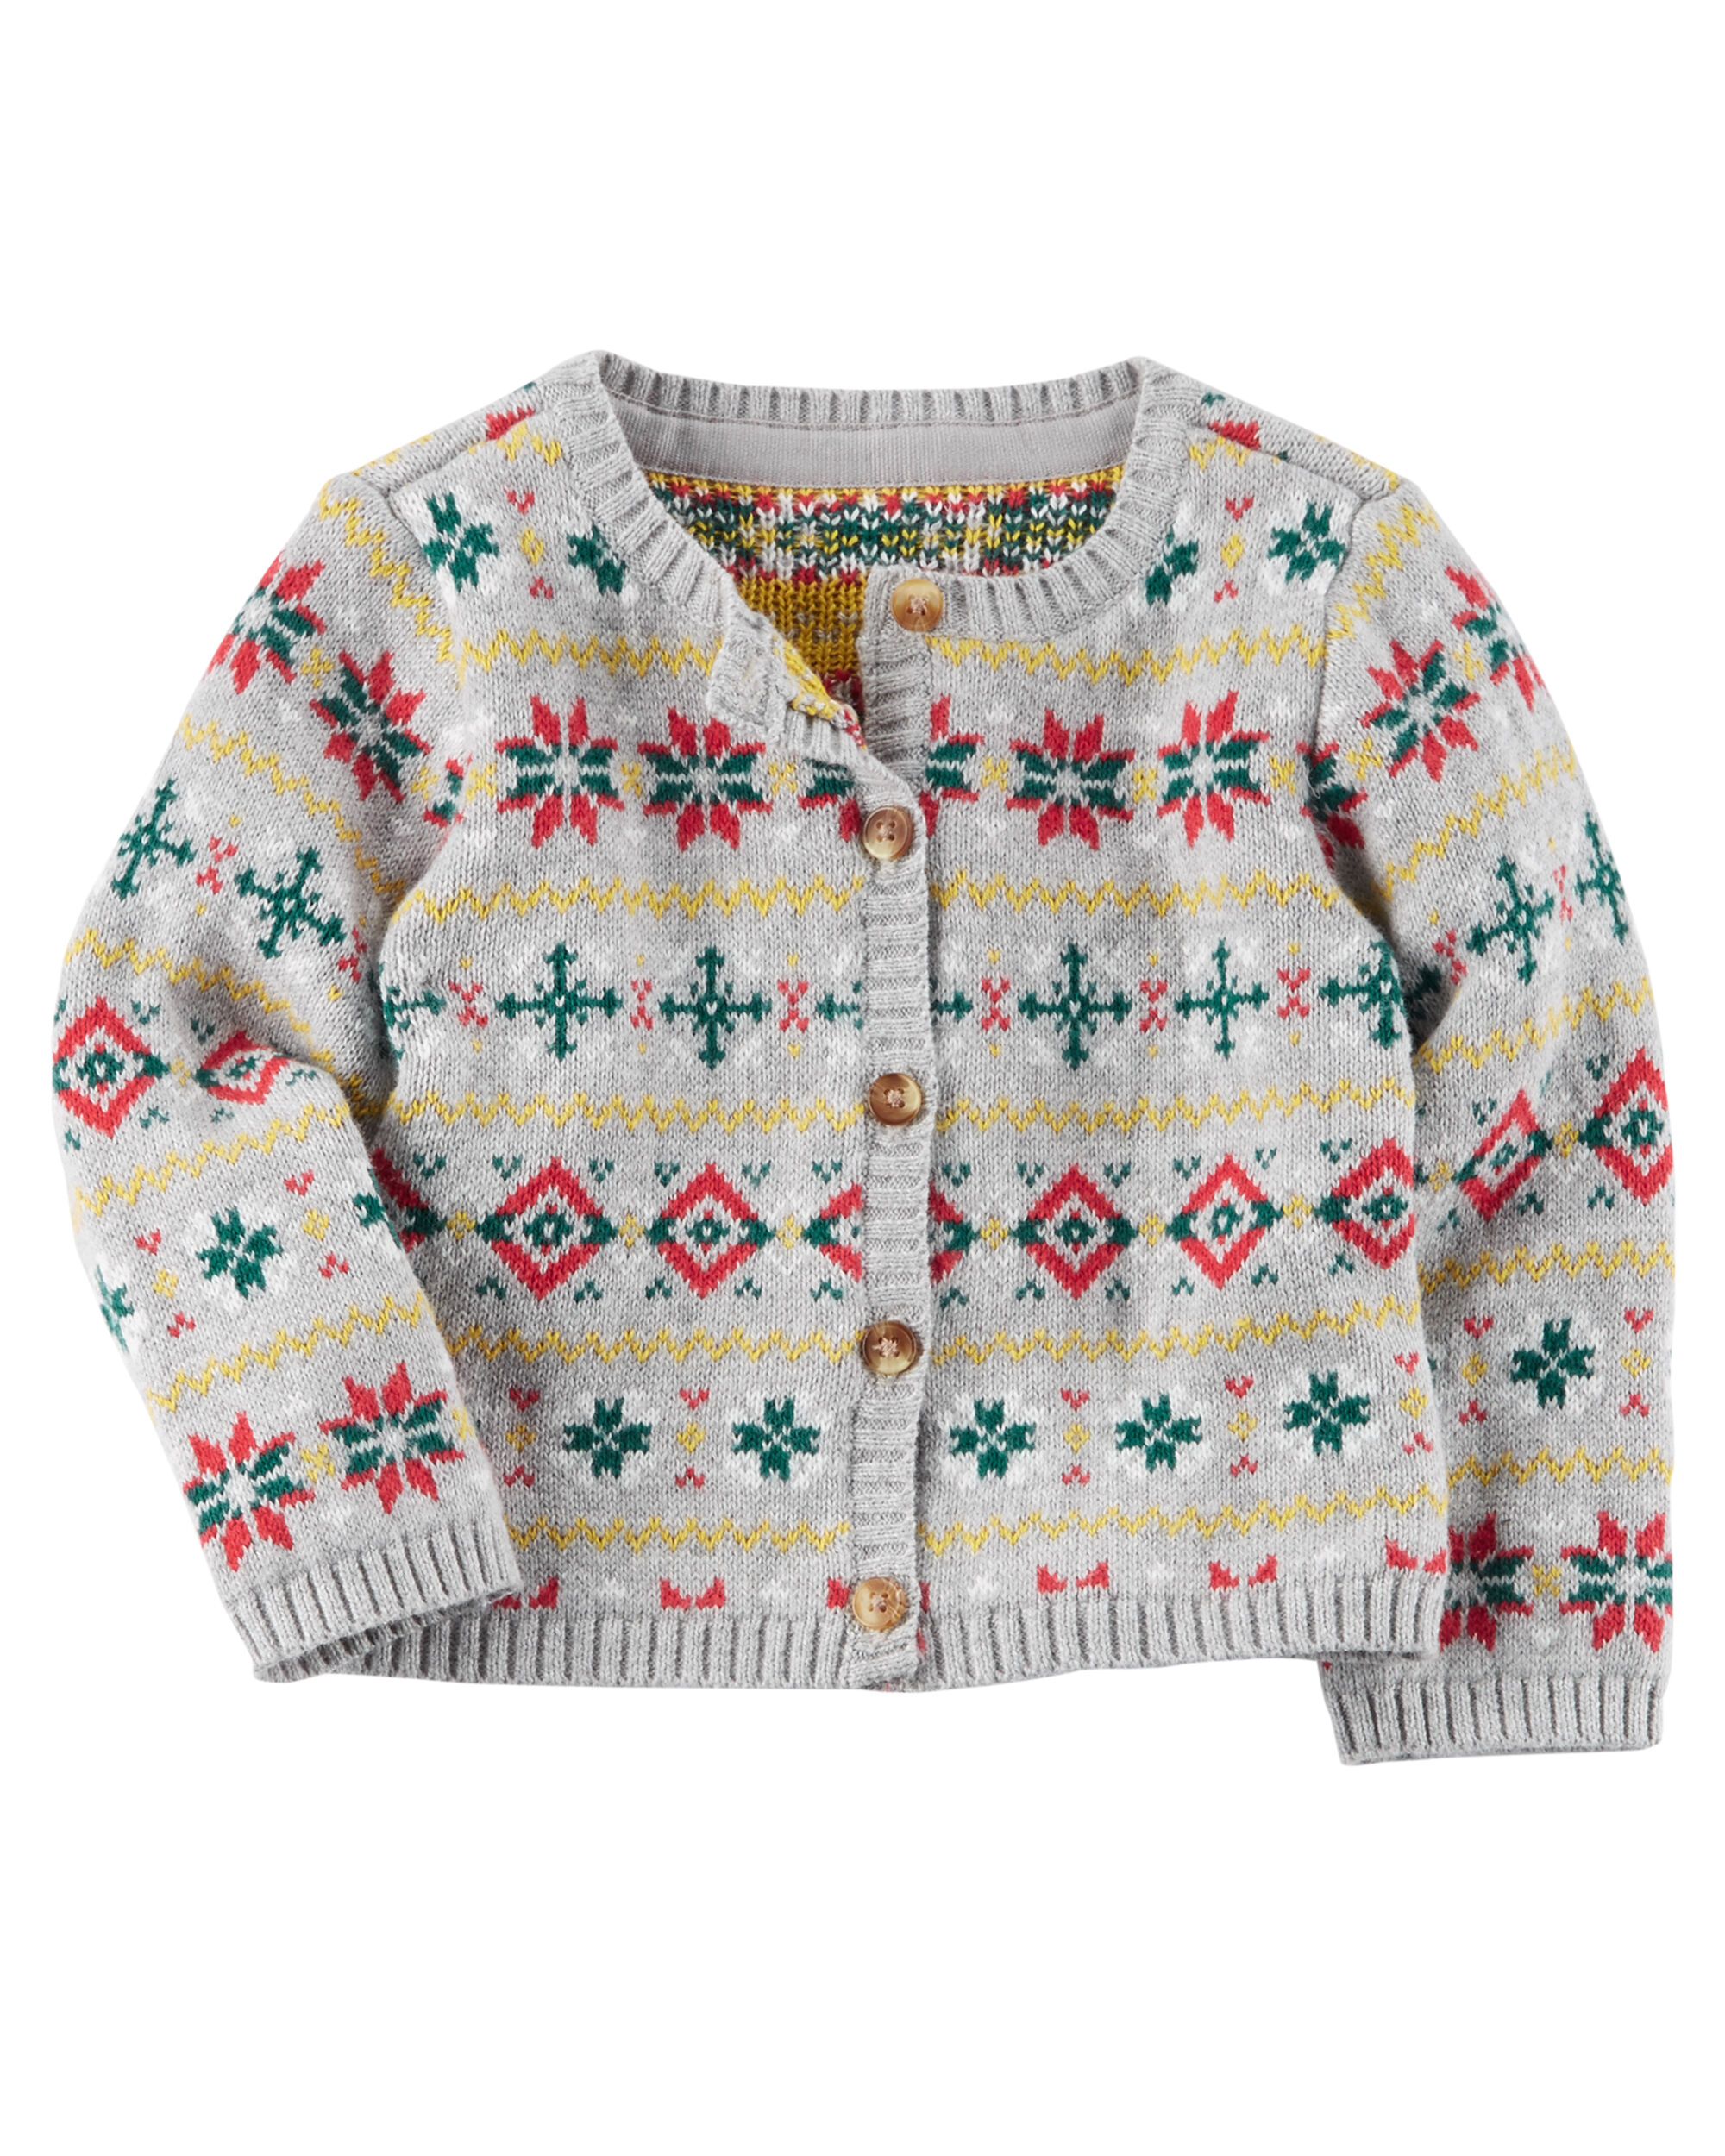 Fair Isle Knit Cardigan | Carters.com